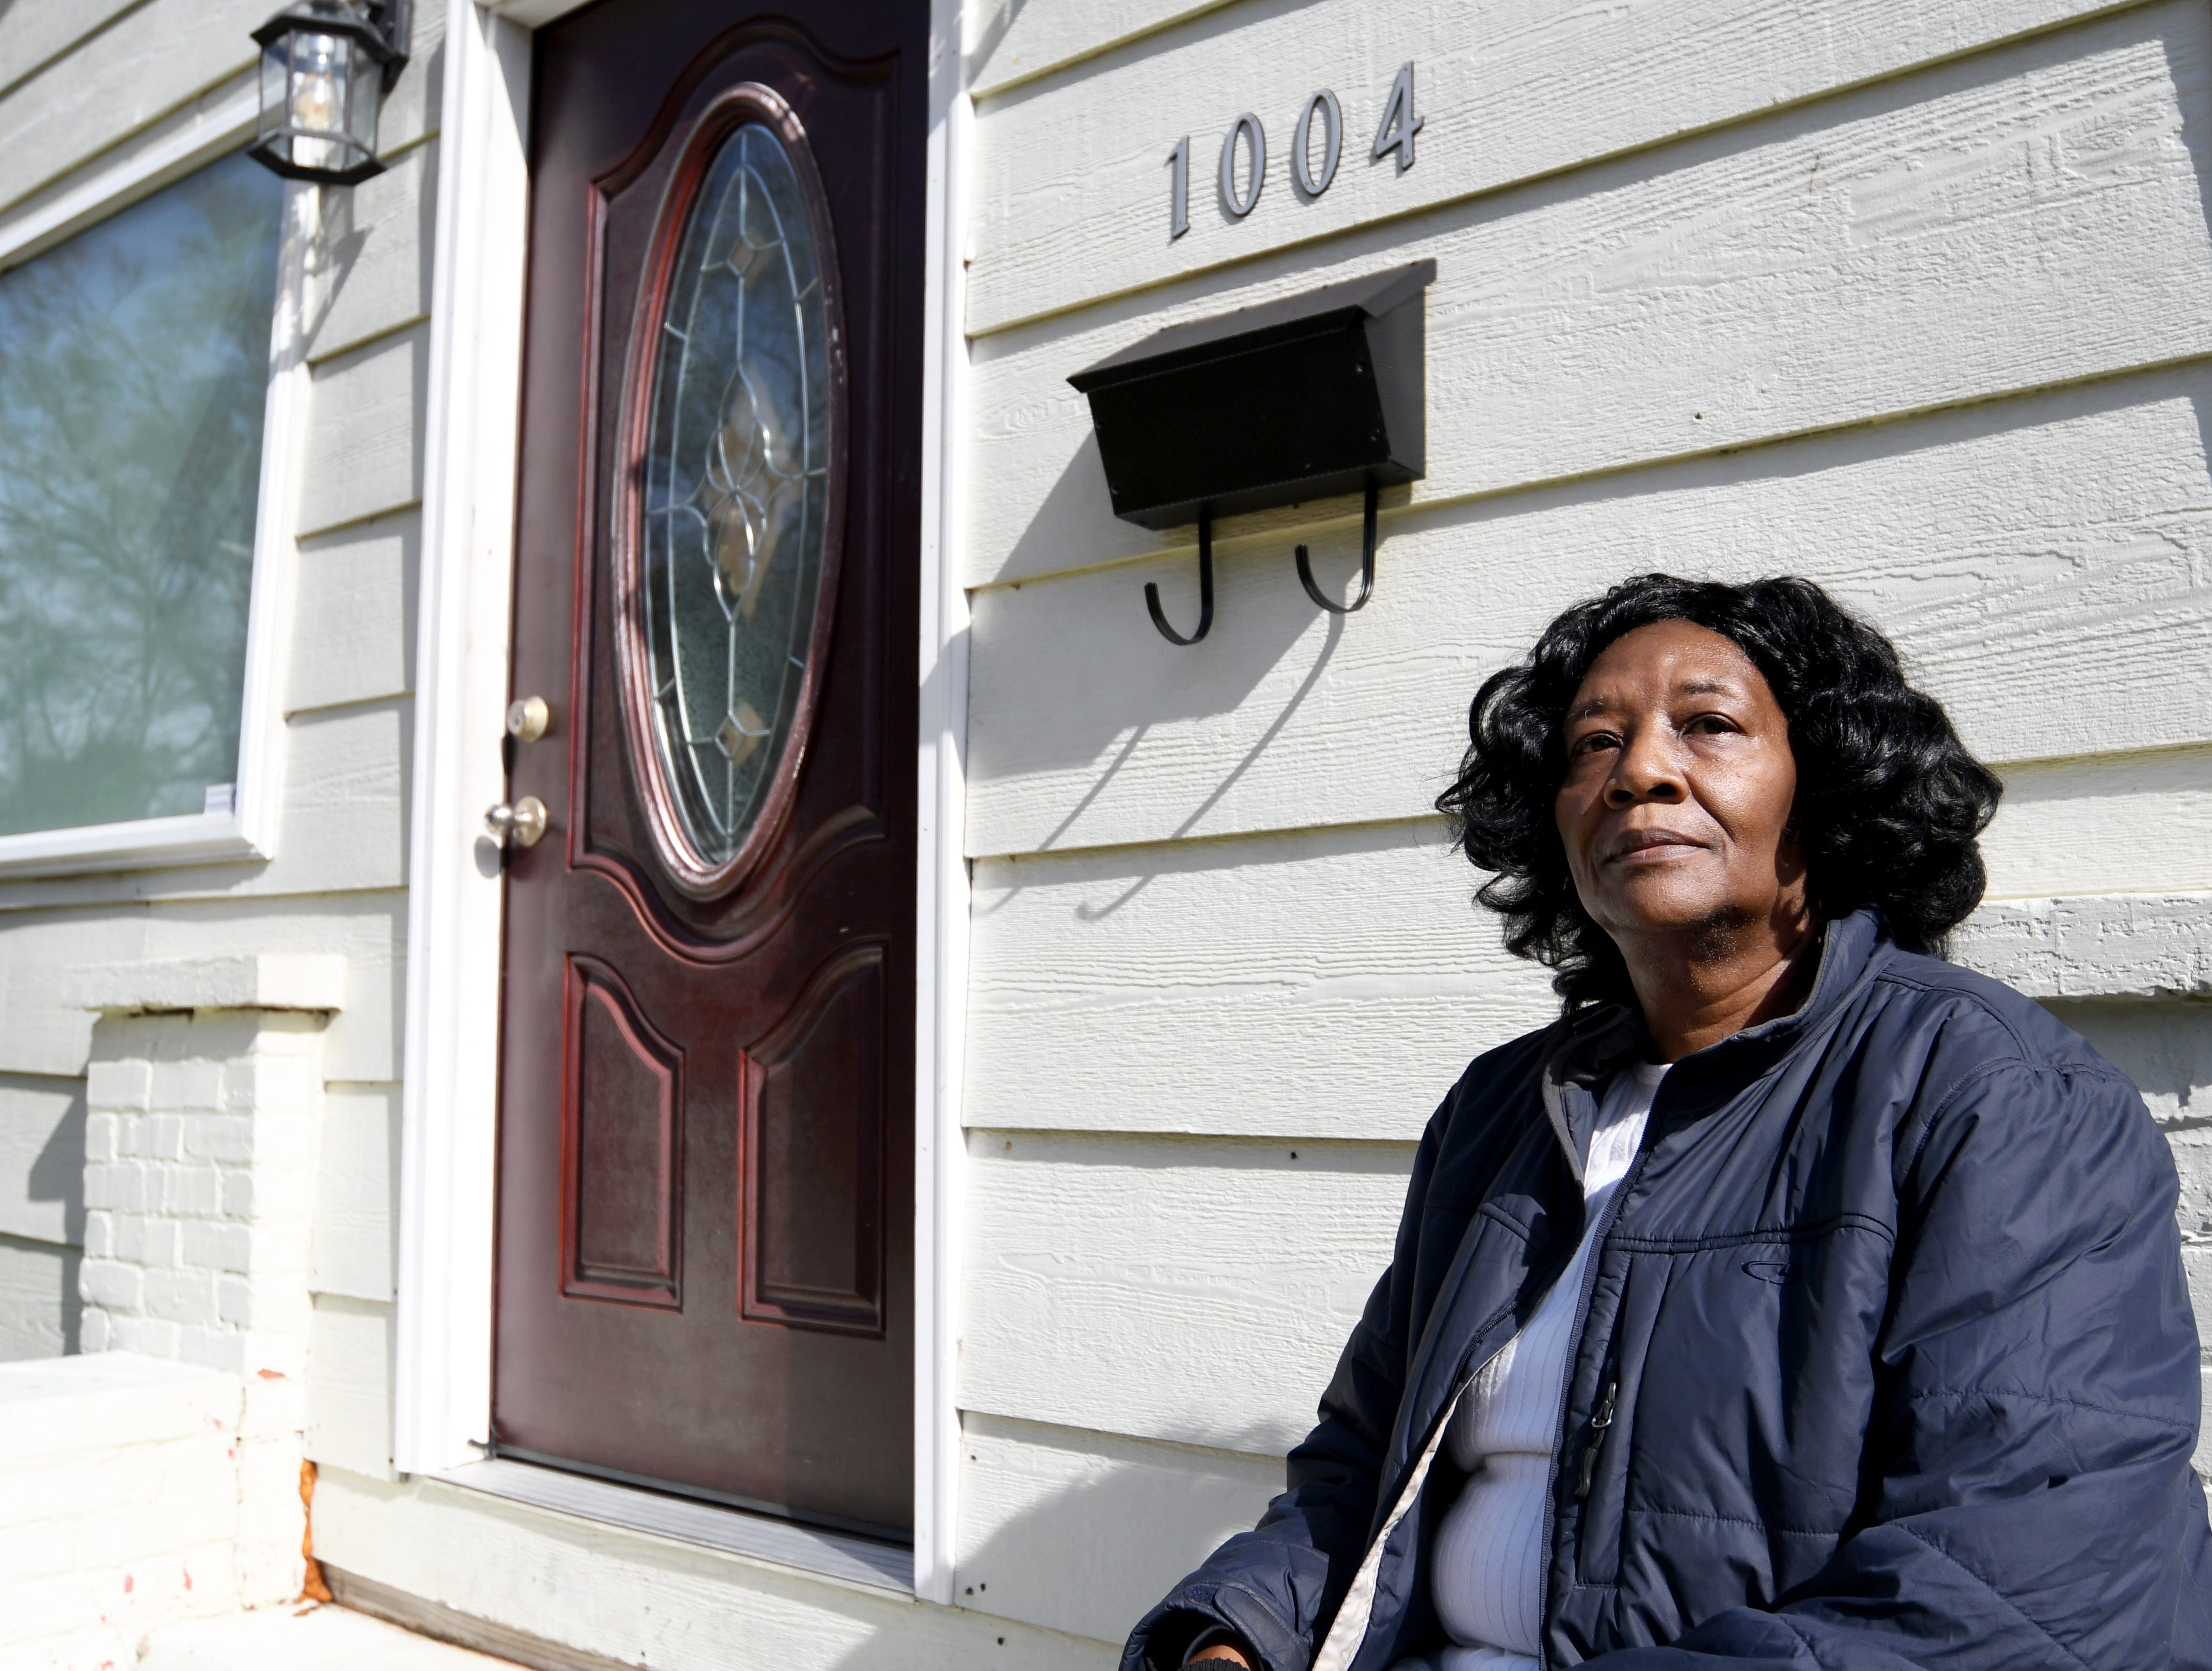 Resident Lillie Dwight stands by her house at 1004 Spencer Street in Hattiesburg that has been given a landmark status by the City Council of when Martin Luther King, Jr. visited there.